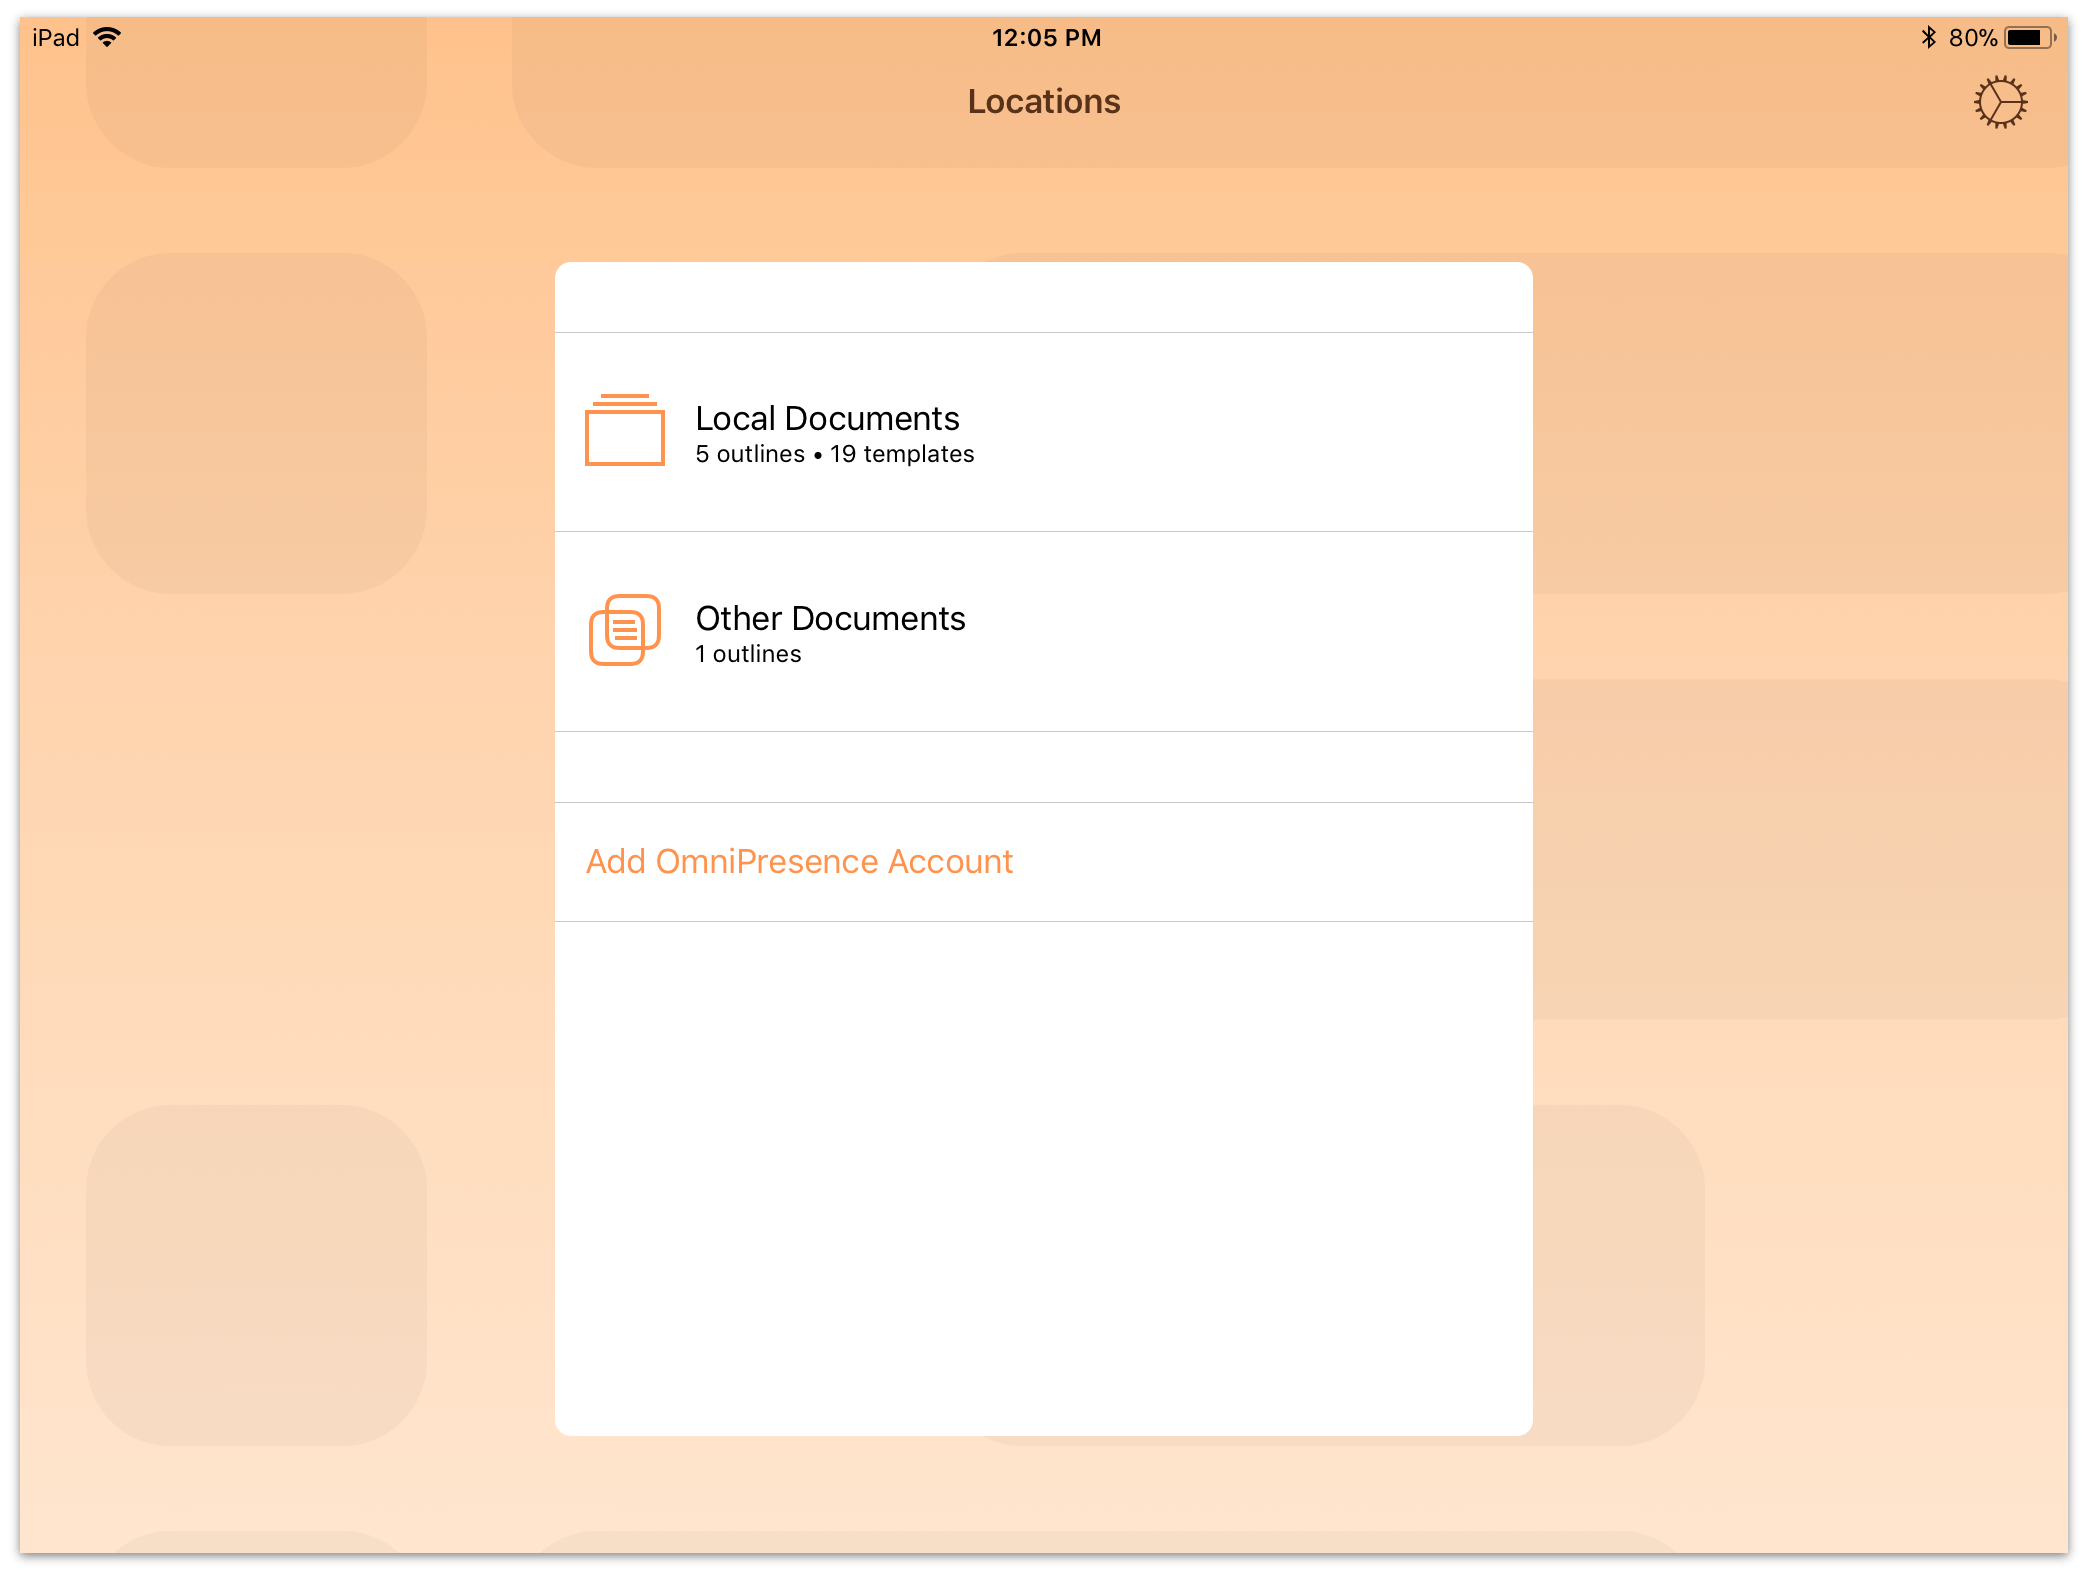 OmniOutliner 2 11 for iOS User Manual - Working in the Cloud